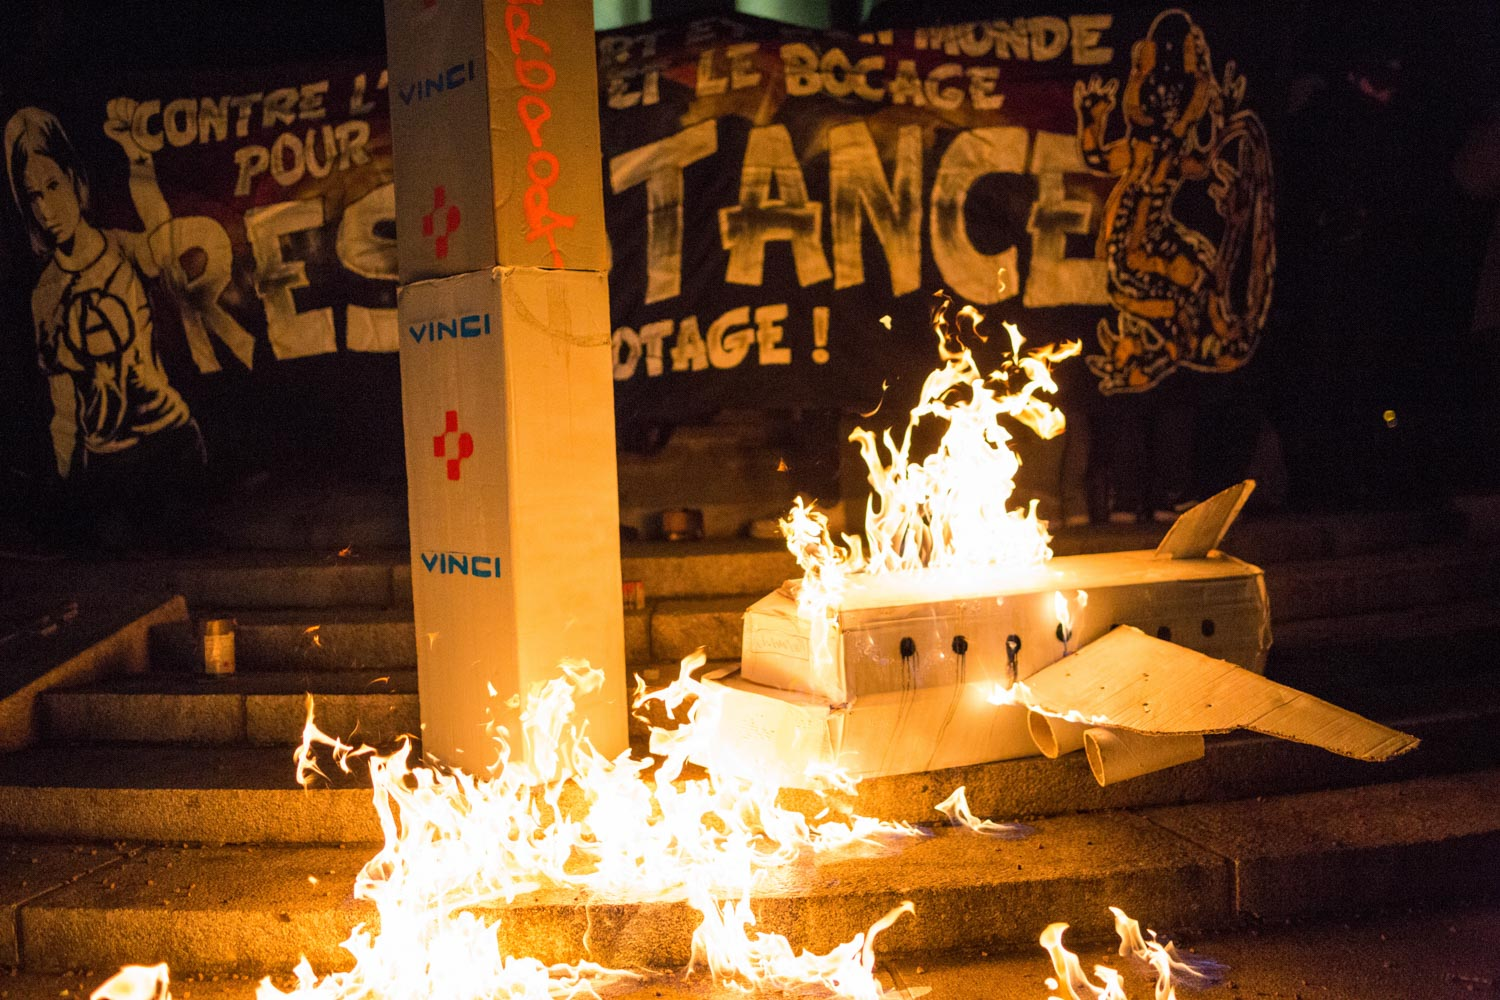 Demonstration to celebrate the abandonment of the 50 years old airport project of Notre-Dame-des-Landes, near Nantes in France, and say no to expulsions after the Prime Minister Edouard Philippe announced it during the day.